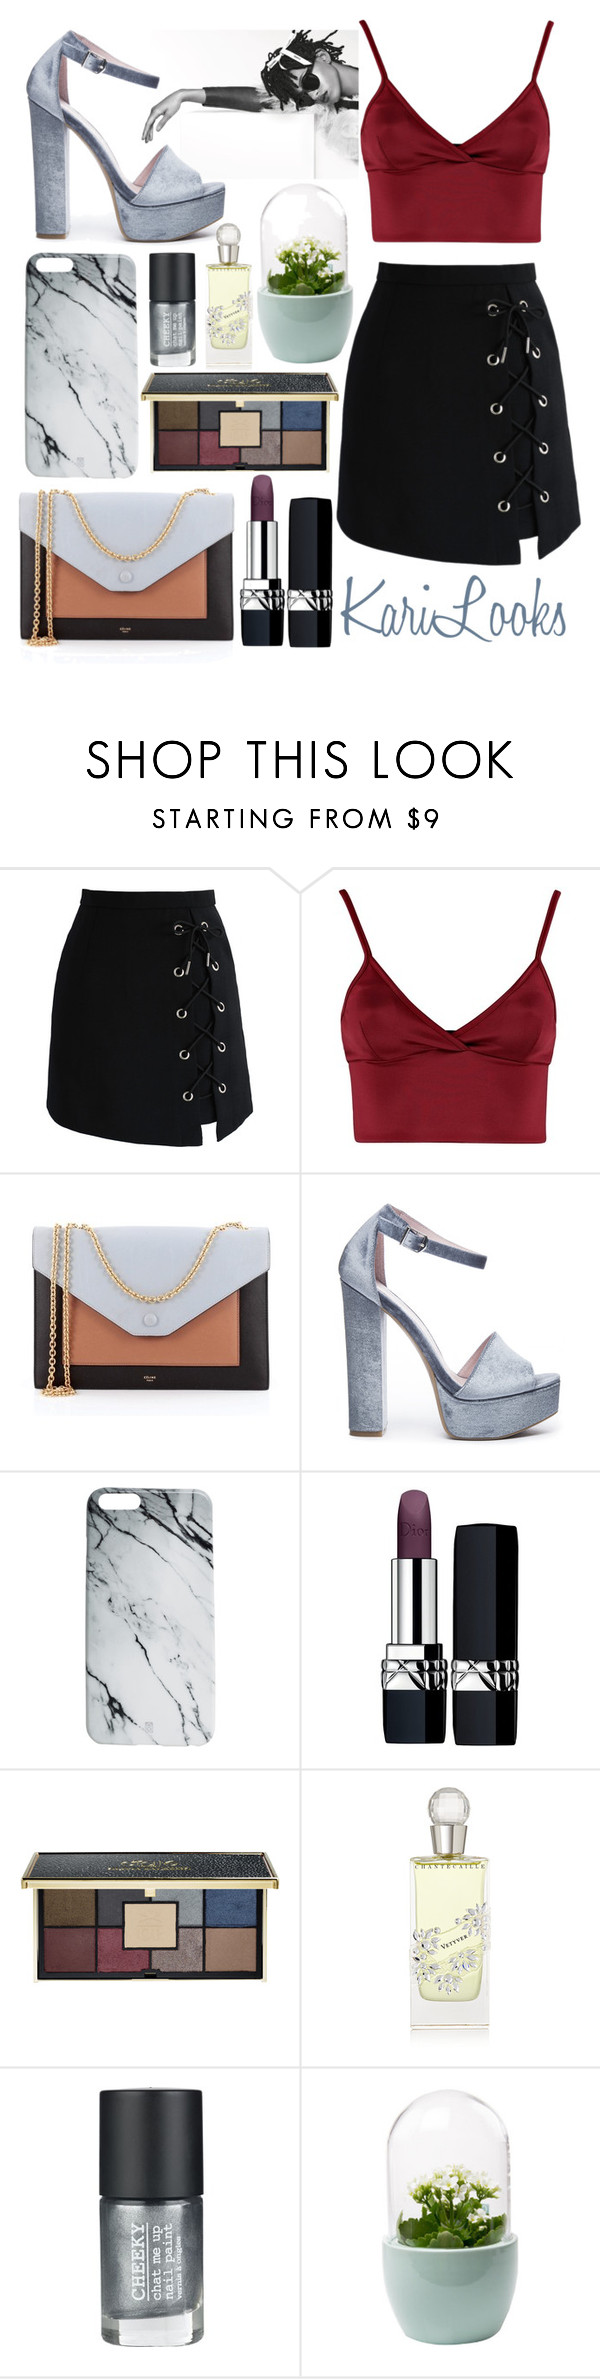 """""""MarblE"""" by karilooks ❤ liked on Polyvore featuring Chicwish, Chanel, Lipsy, CÉLINE, Chinese Laundry, Case Scenario, Christian Dior, Ciaté, Chantecaille and Cheeky"""